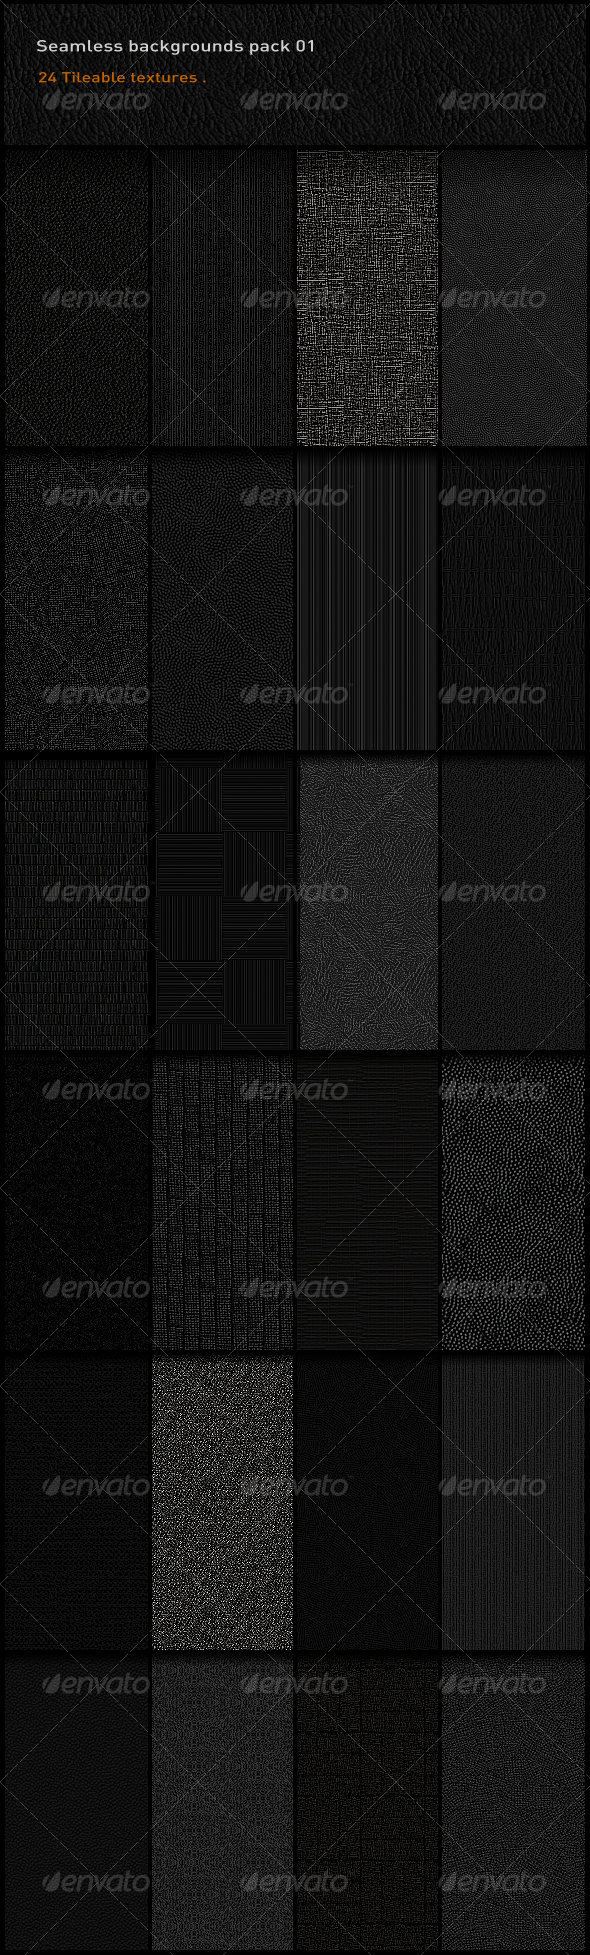 GraphicRiver Seamless Backgrounds Pack 01 2496196